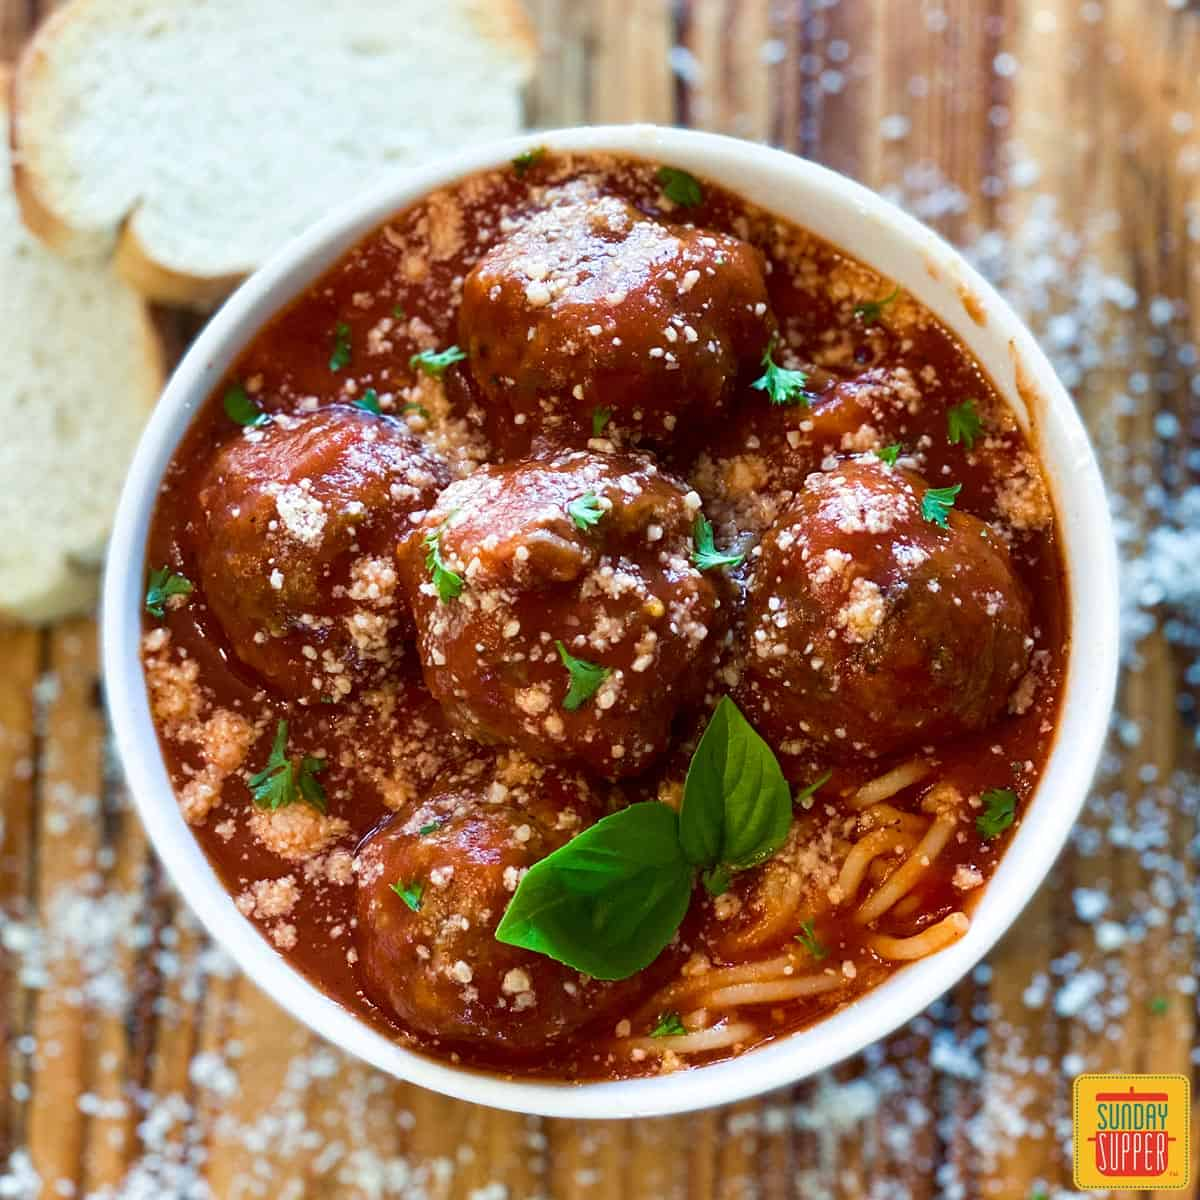 Meatball sauce recipe over meatballs and spaghetti in a white bowl